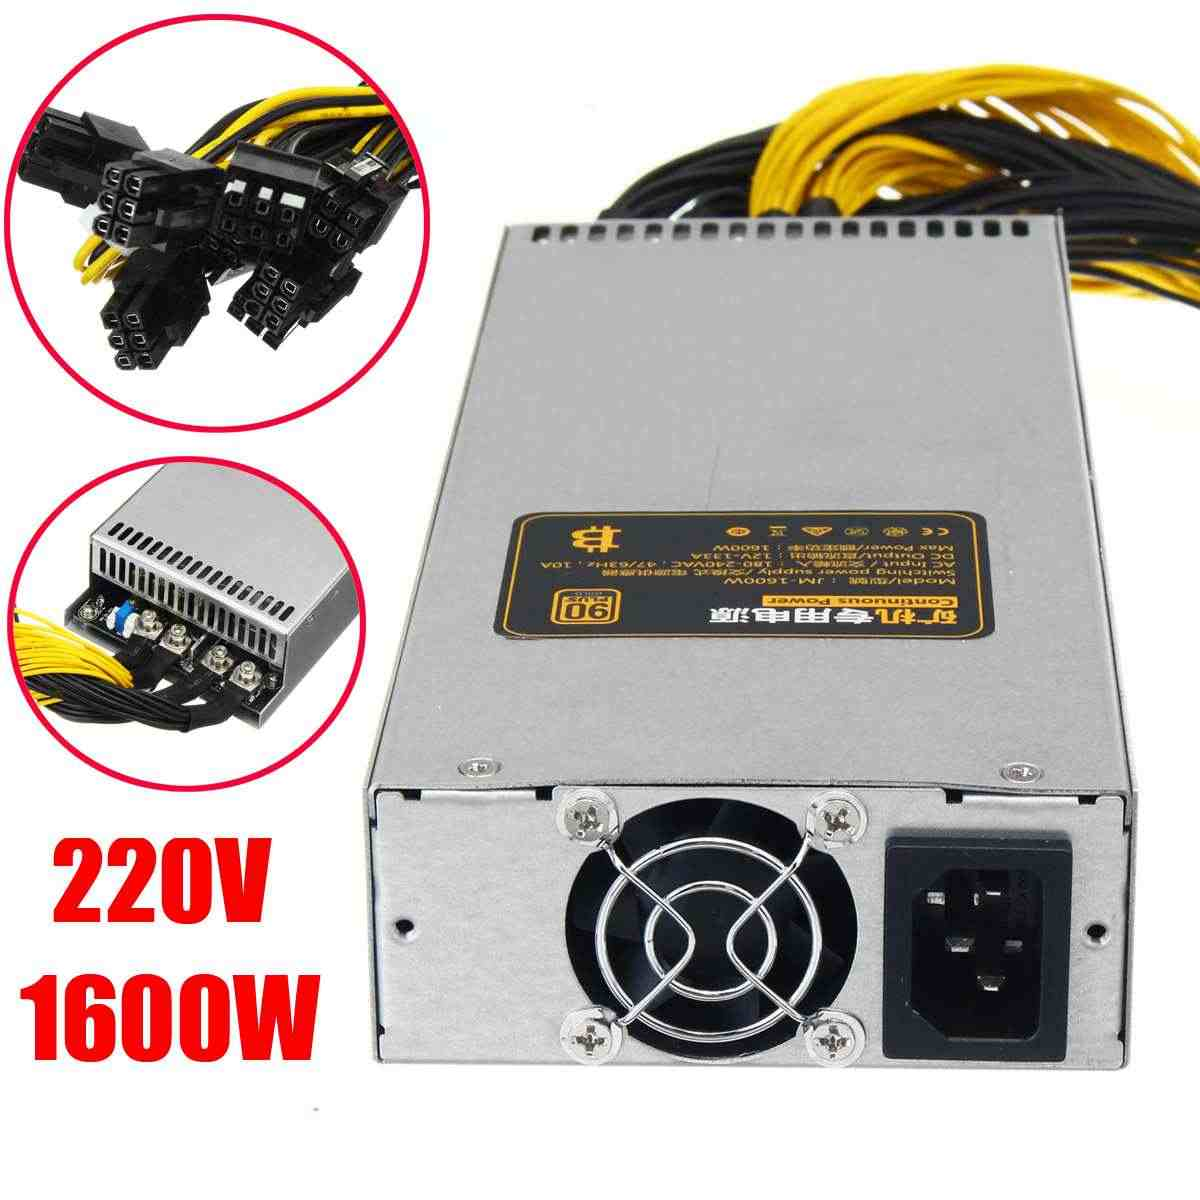 220V 1600W Power Supply 6Pin PCI-E 95% for Mining Machine For Antminer S9  S7 L3+ D3